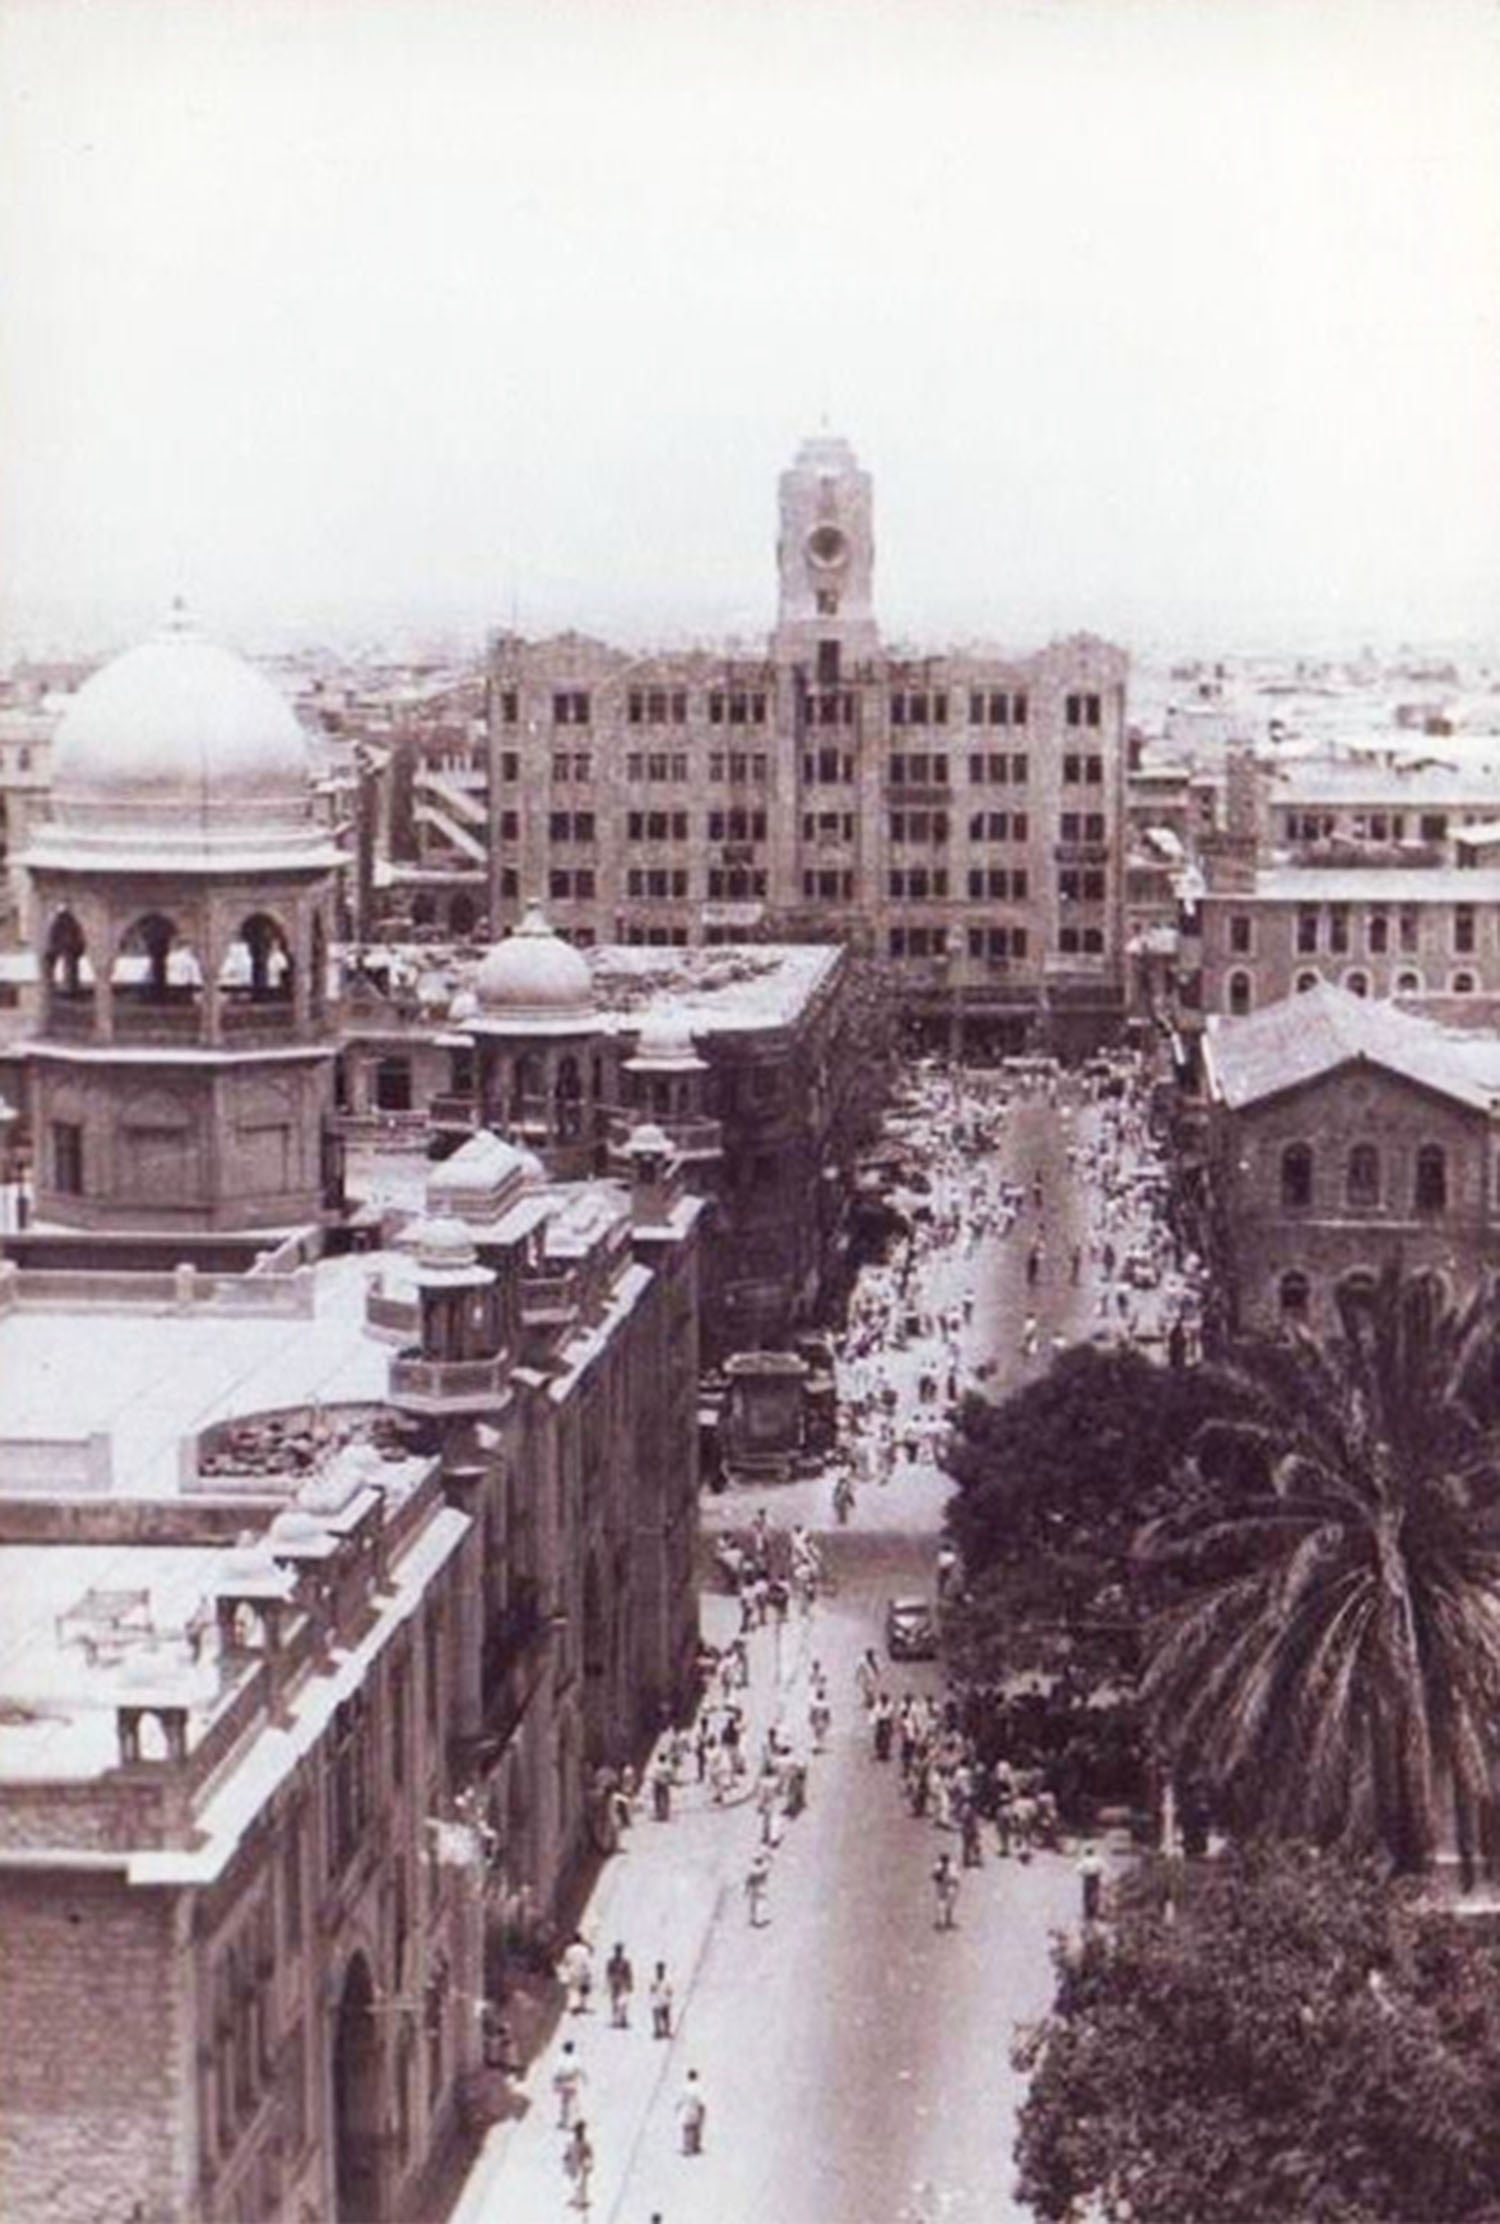 A 1951 photograph of a busy commercial area of Karachi.